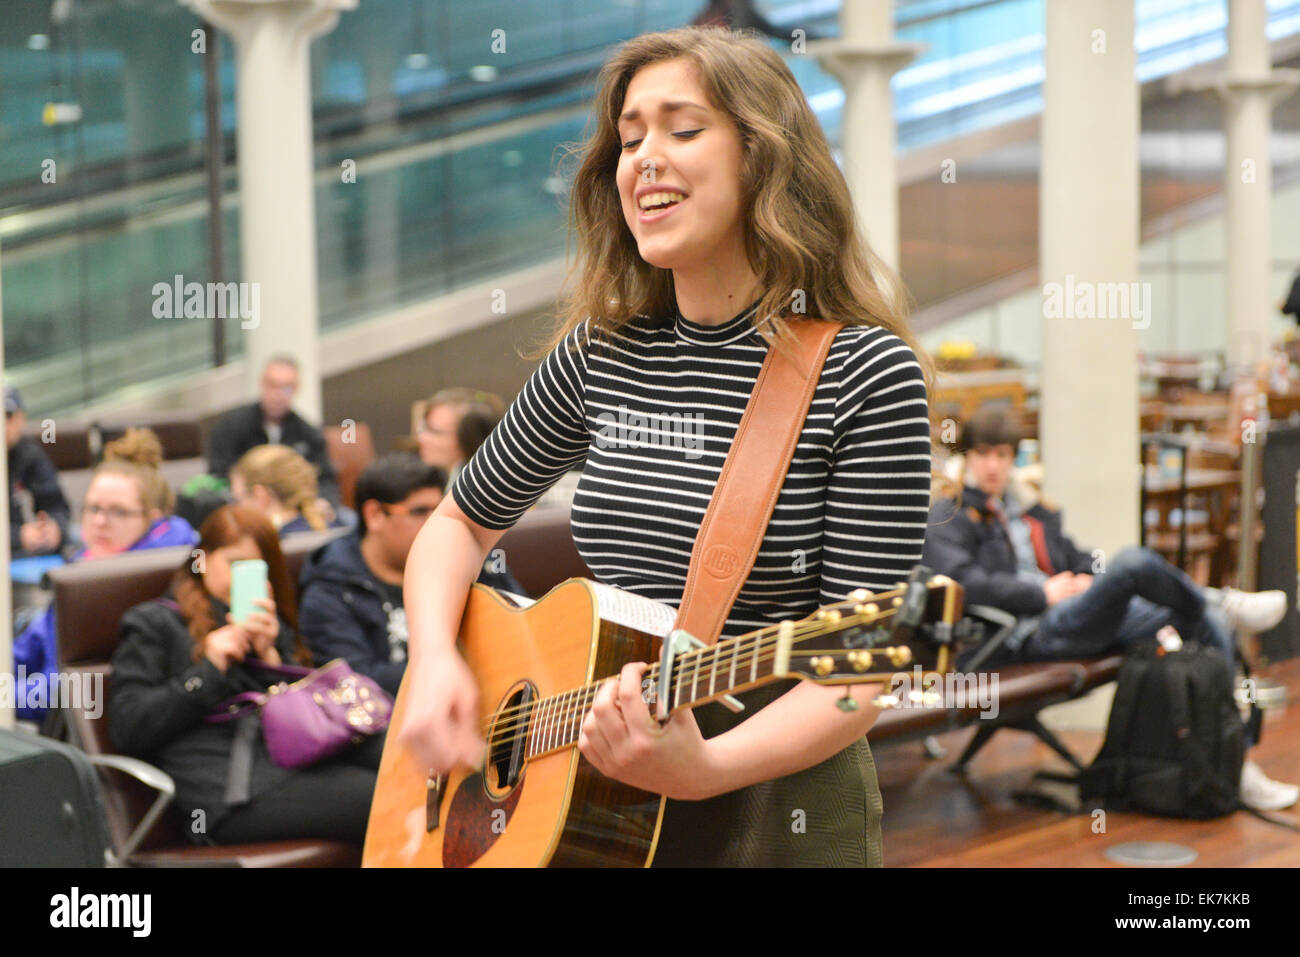 St Pancras International, London, UK. 8th April 2015. Enfield 16 yr old Natalie Shay a student at the BRIT school - Stock Image